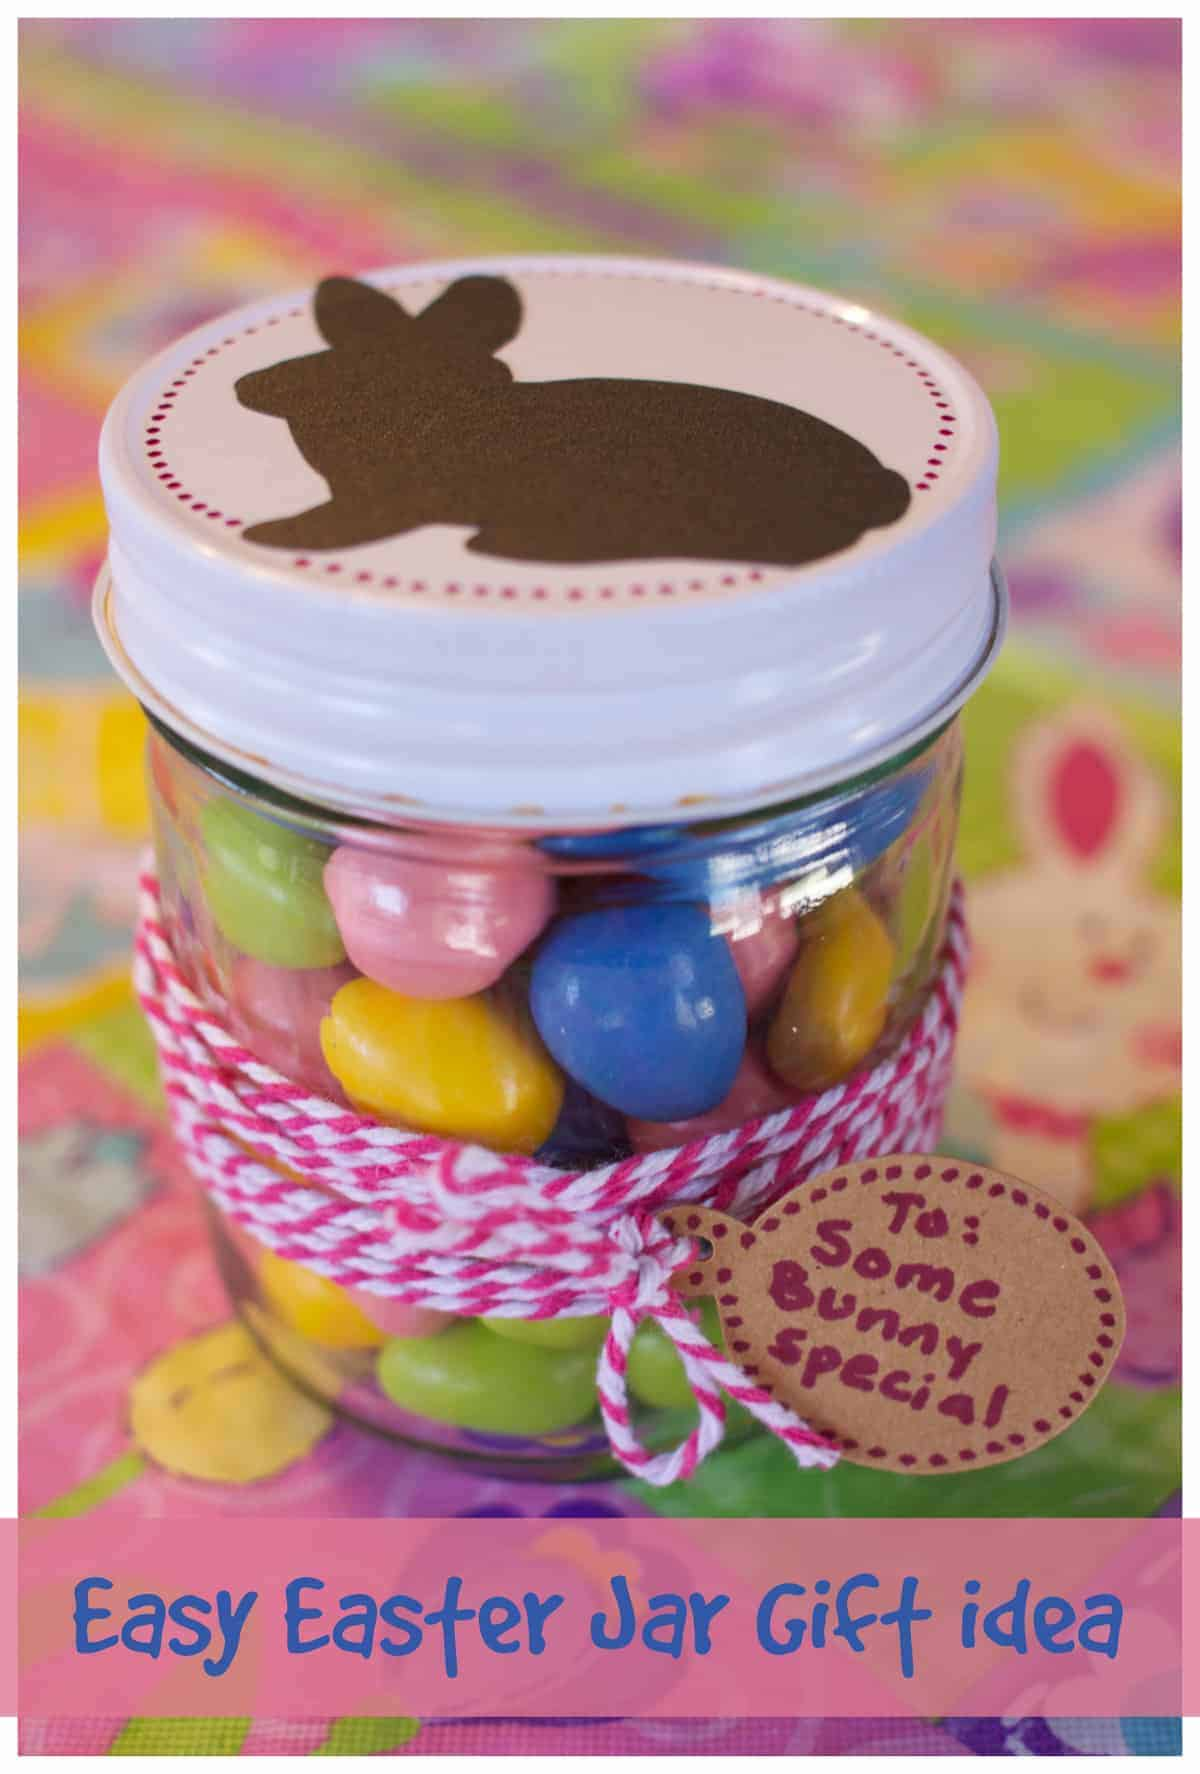 Easy Easter Jar Gift Idea with Cricut Machine